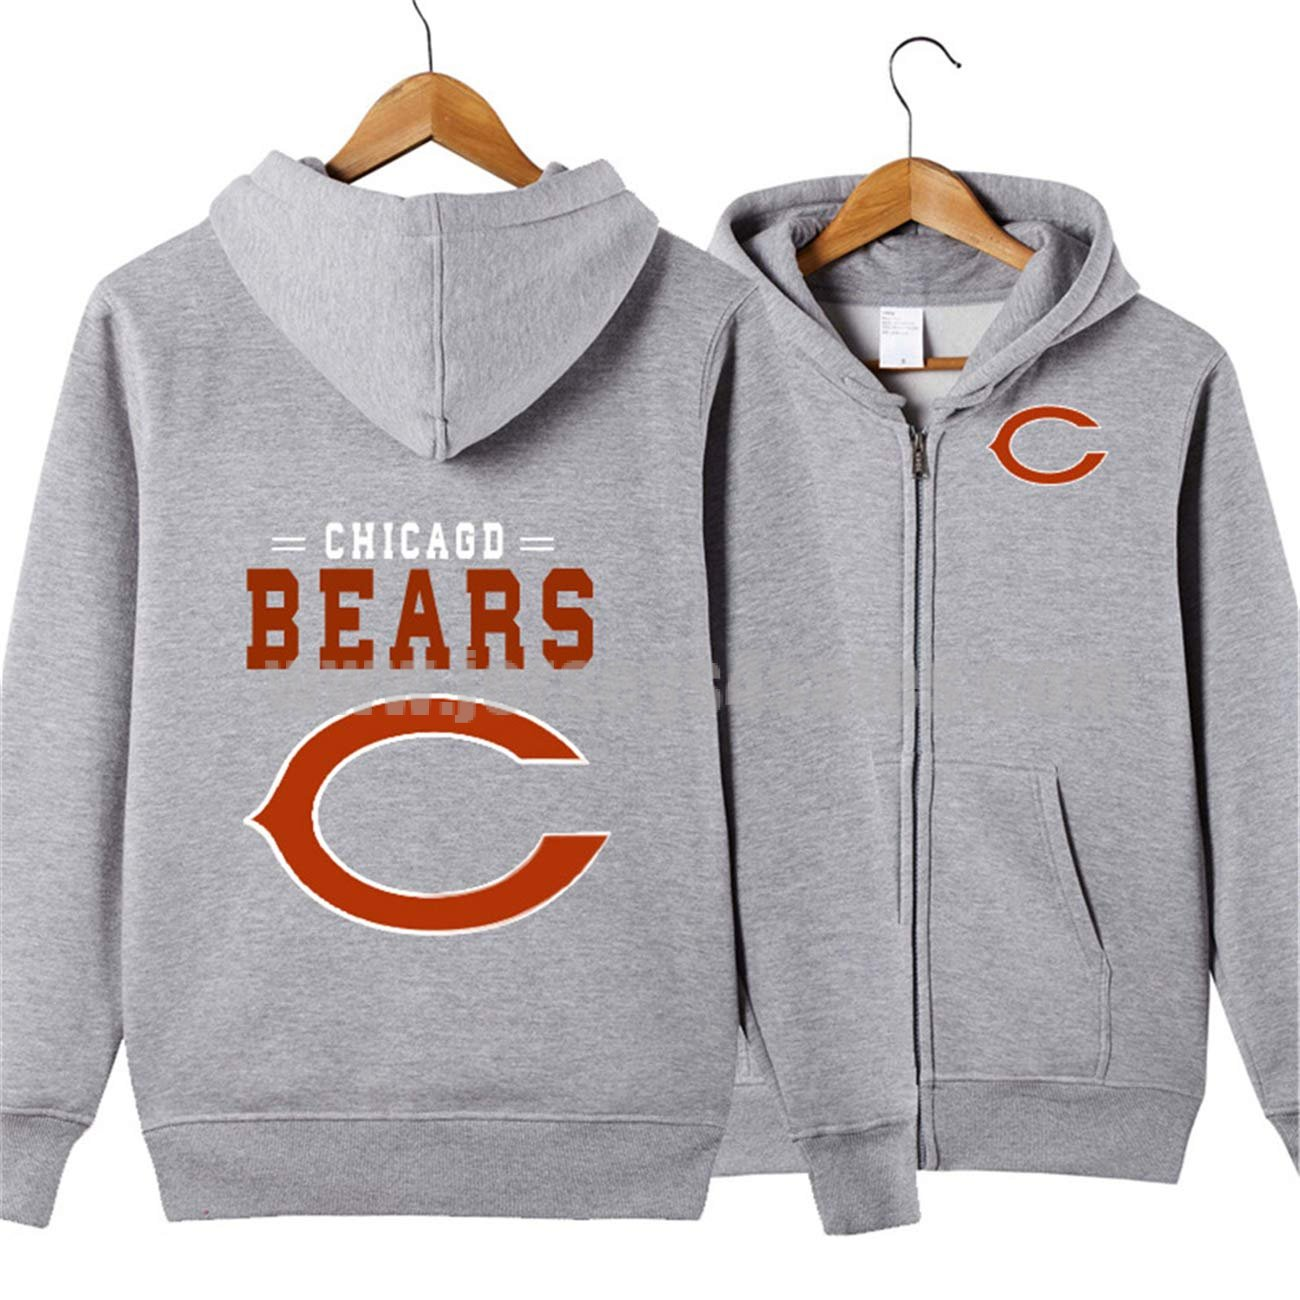 Men's Long Sleeve Hooded Letters Print Chicago Bears Solid Color Zipper HOODIES